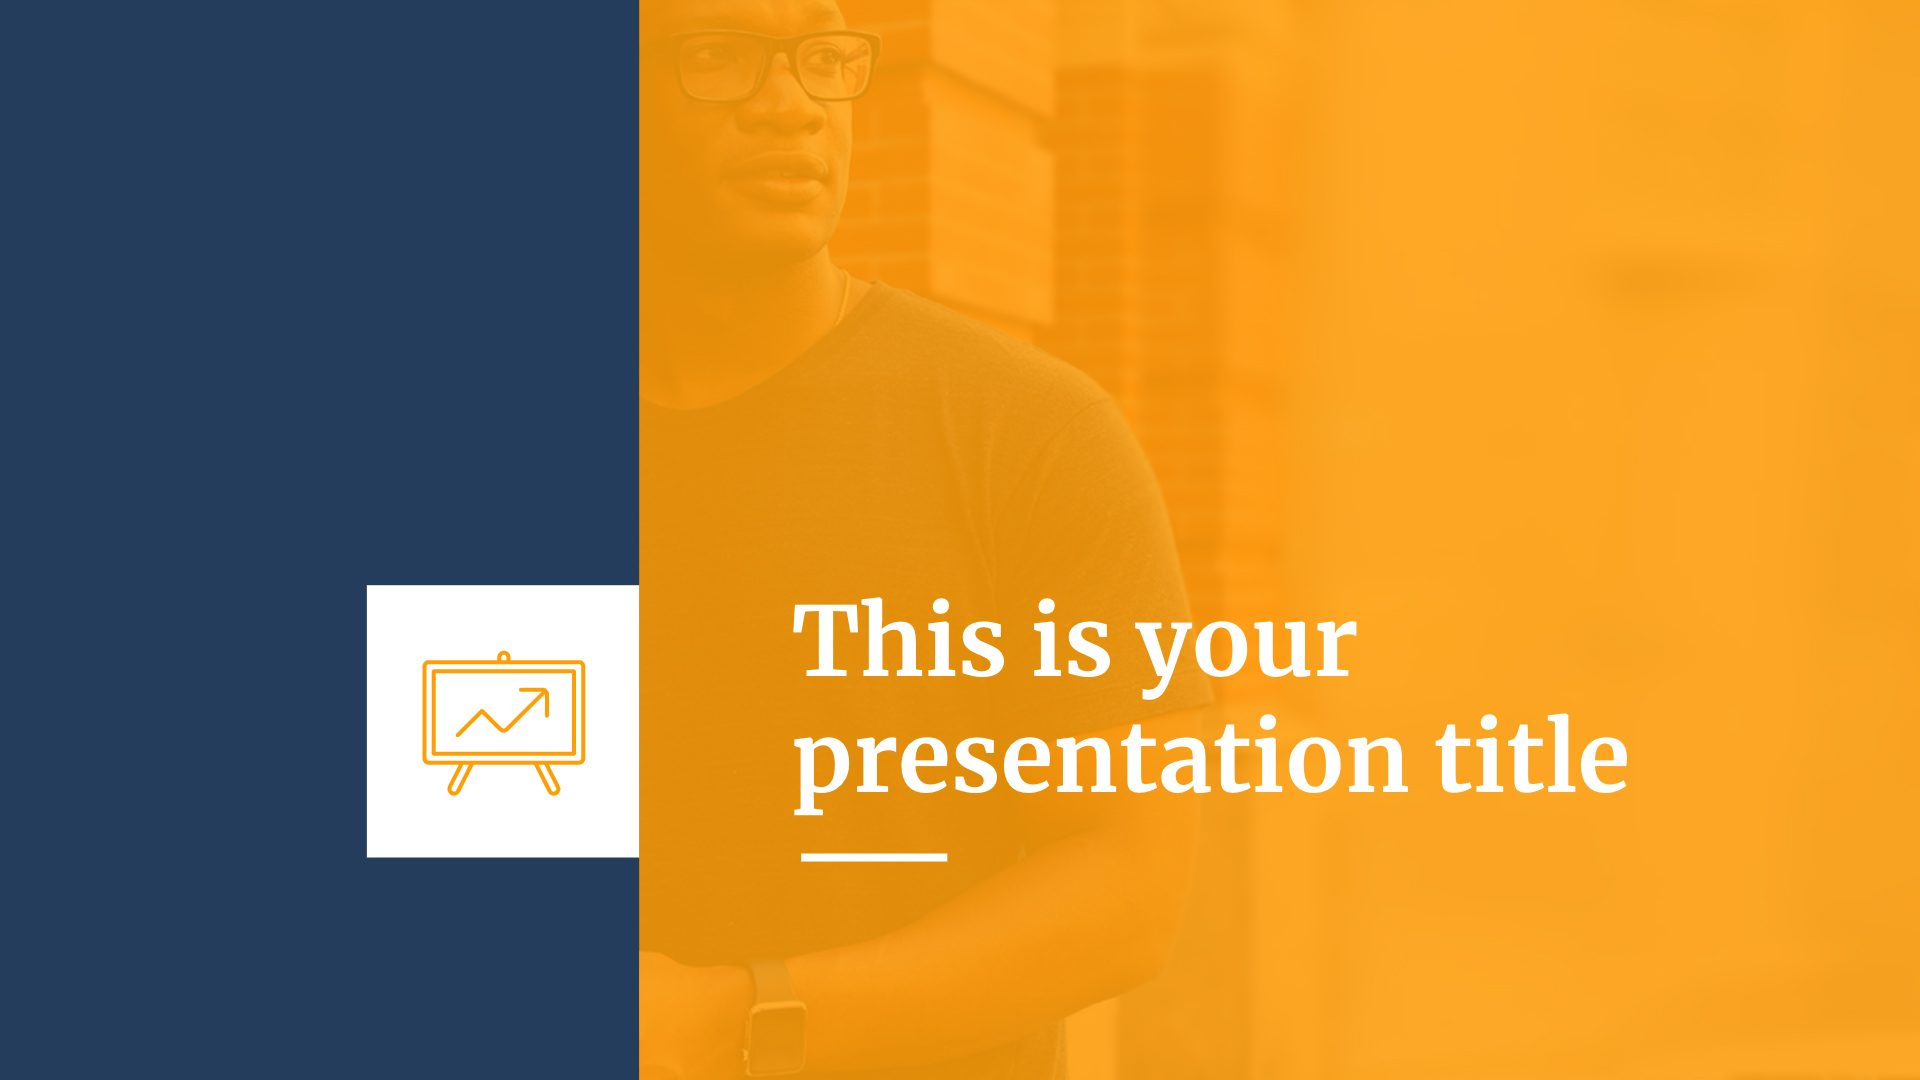 Free professional presentation for startups - Powerpoint template or Google Slides theme